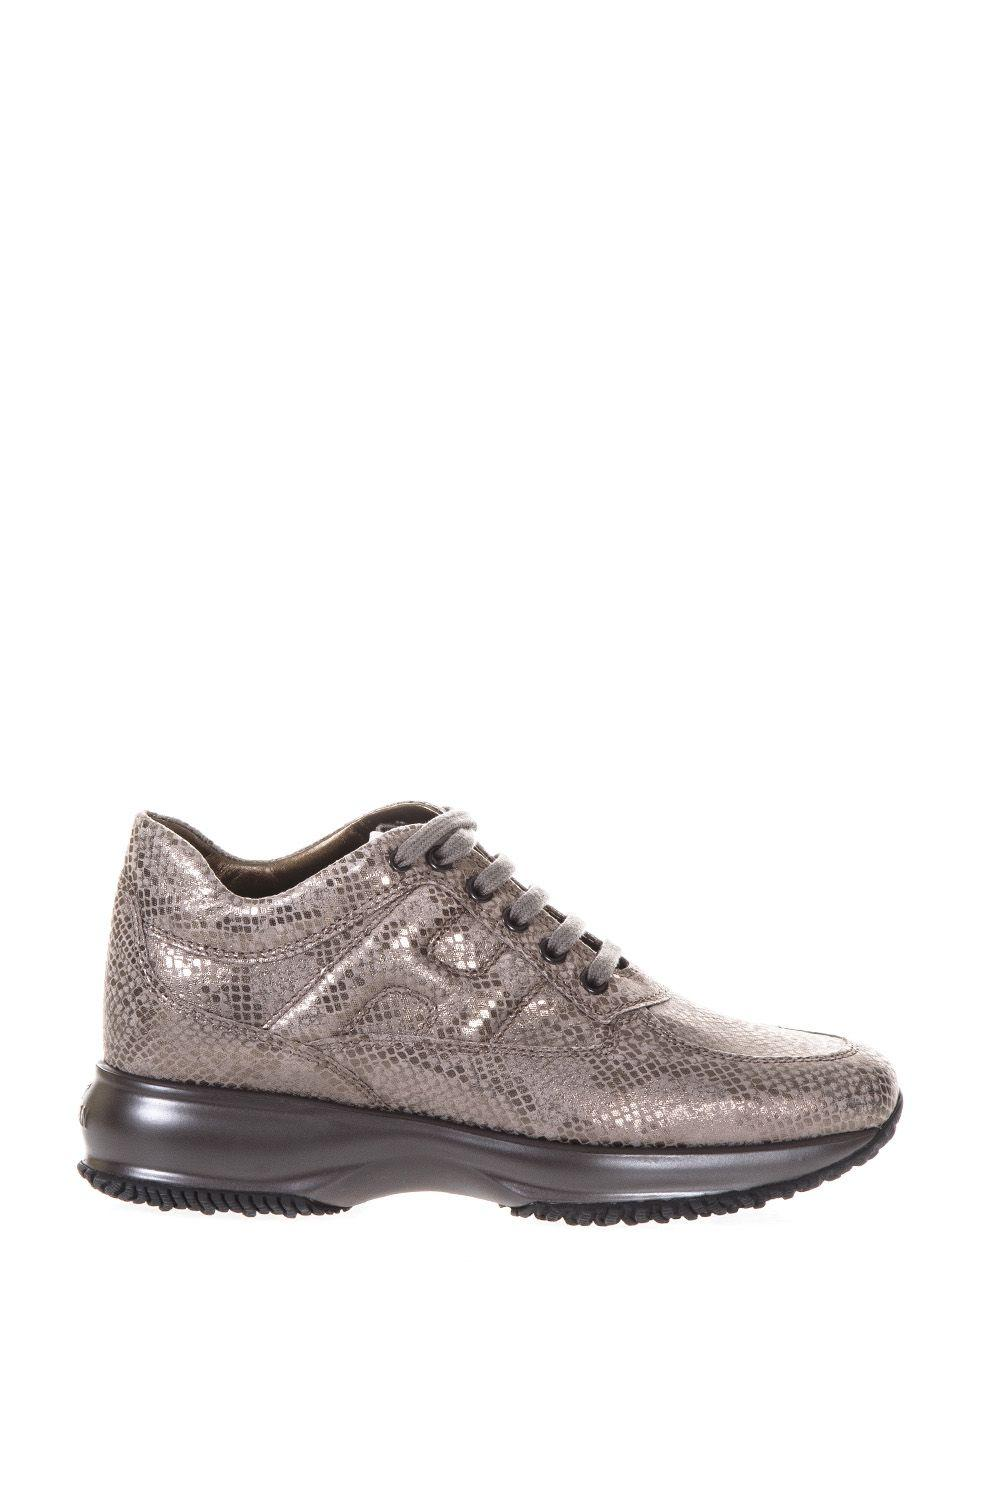 Hogan Reptile Effect Suede Shiny Interactive In Stone